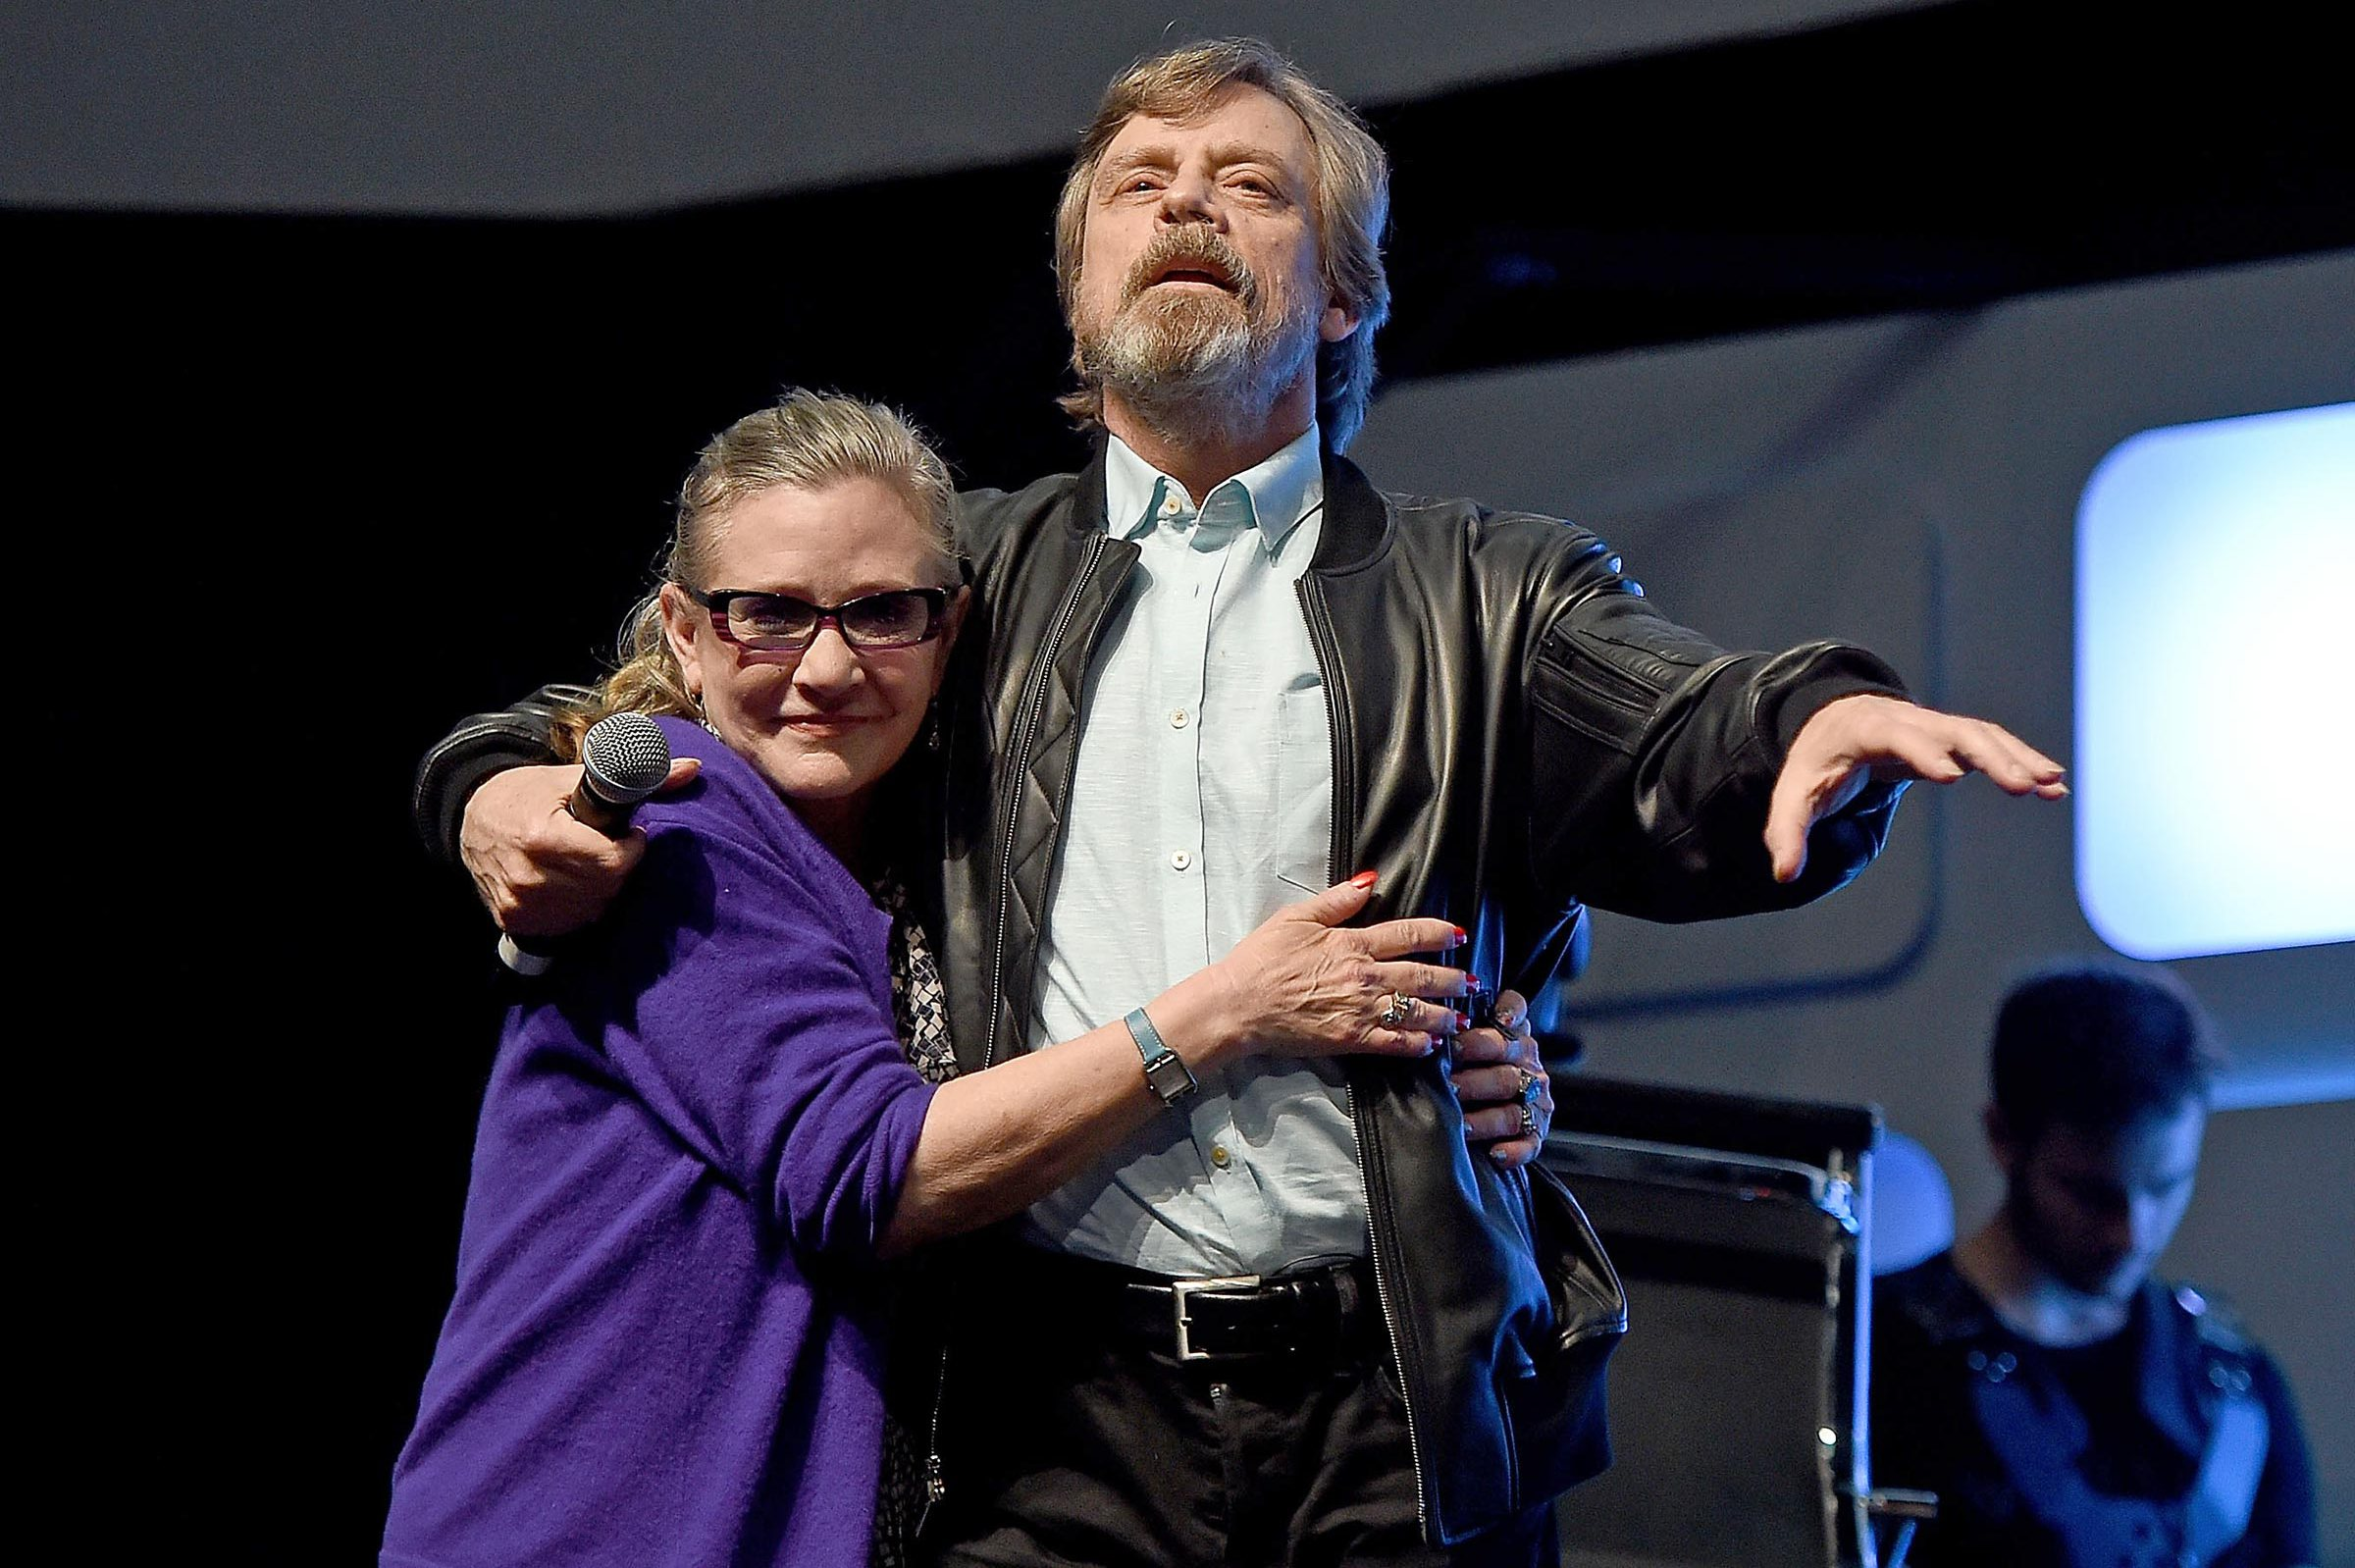 Mark Hamill Shares Poignant Tribute To Carrie Fisher Ahead Of Star Wars: The Last Jedi